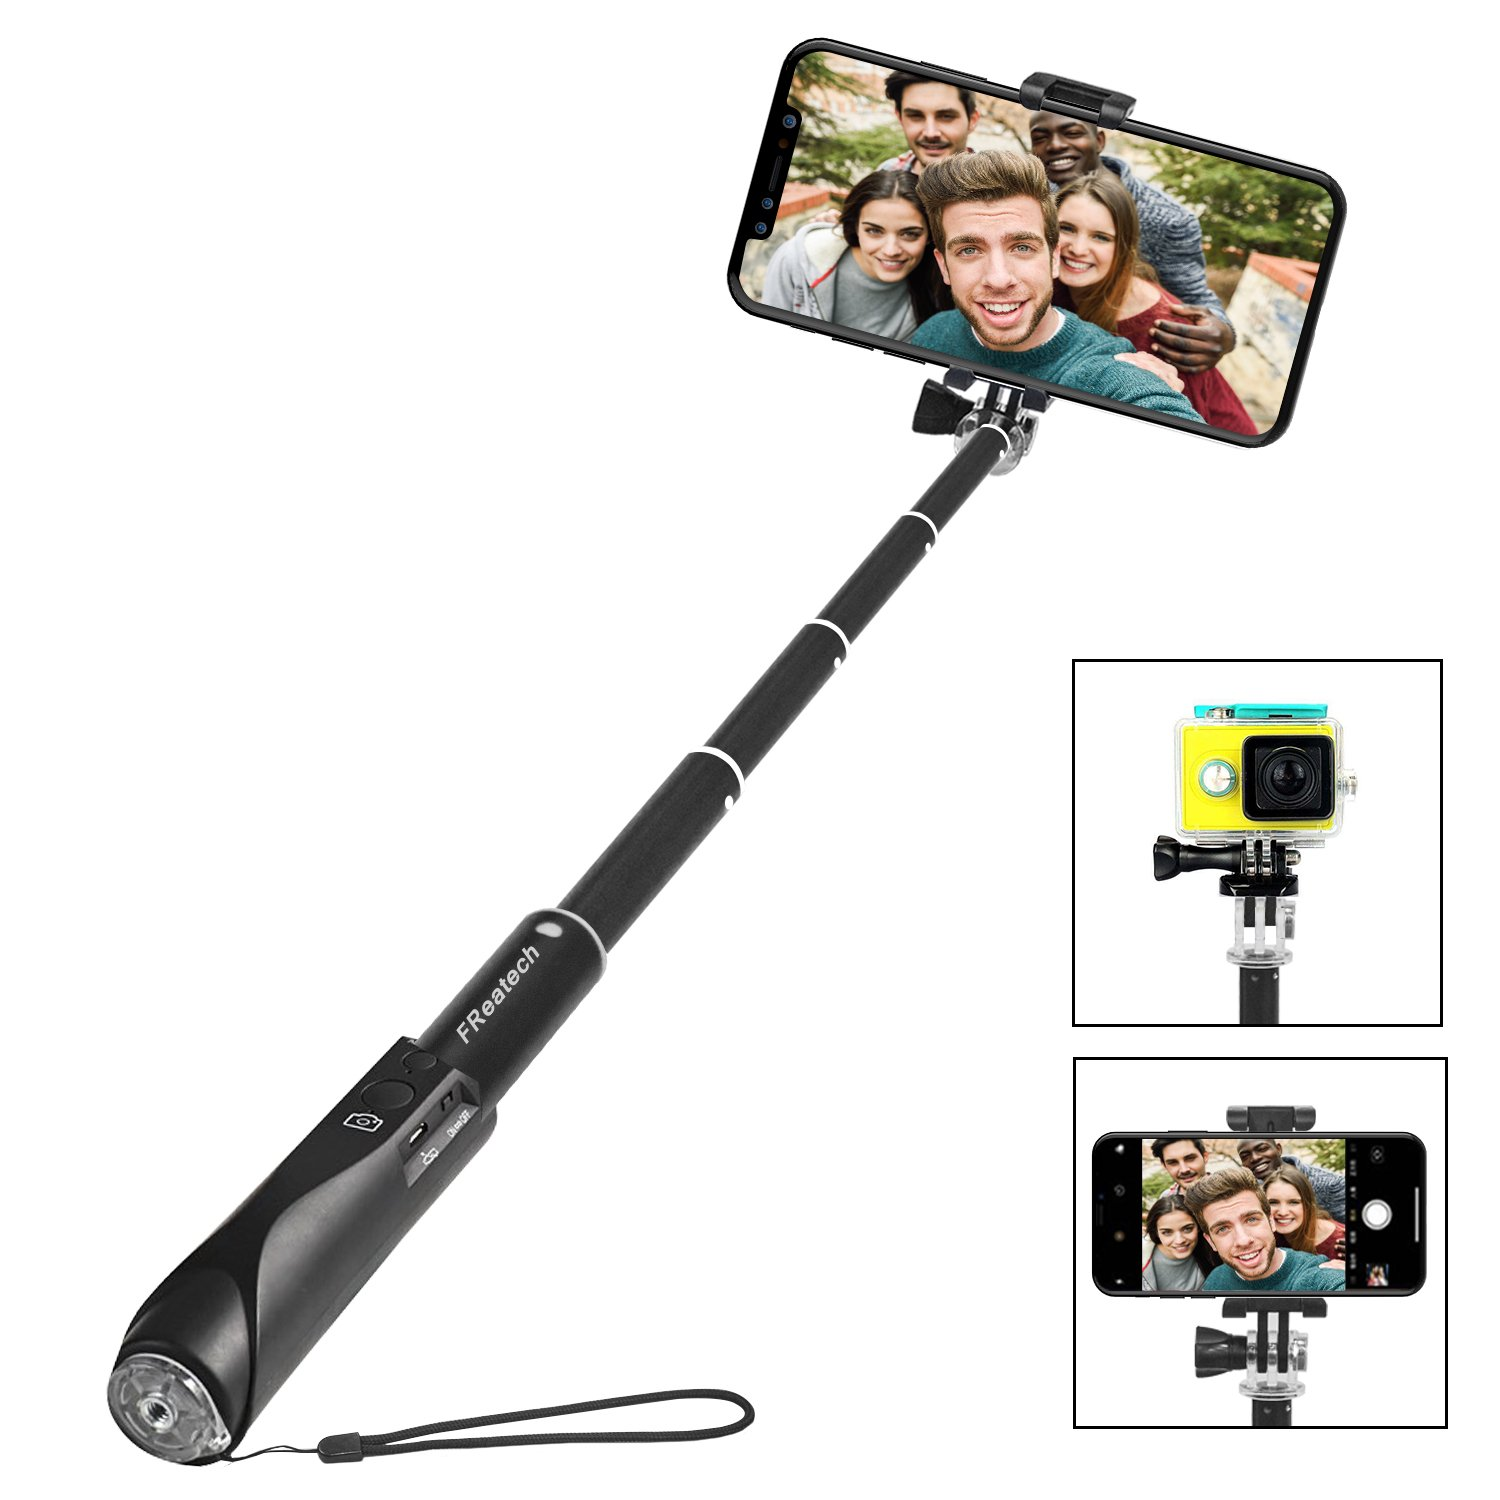 Bluetooth Selfie Stick, FReatech Non-Slip Extendable Handheld Monopod with Built-in Bluetooth Wireless Shutter for iPhone X/8/7/6s/6 Plus, Galaxy S9/S8 Plus/Note 8 and Other iOS, Android Smartphones